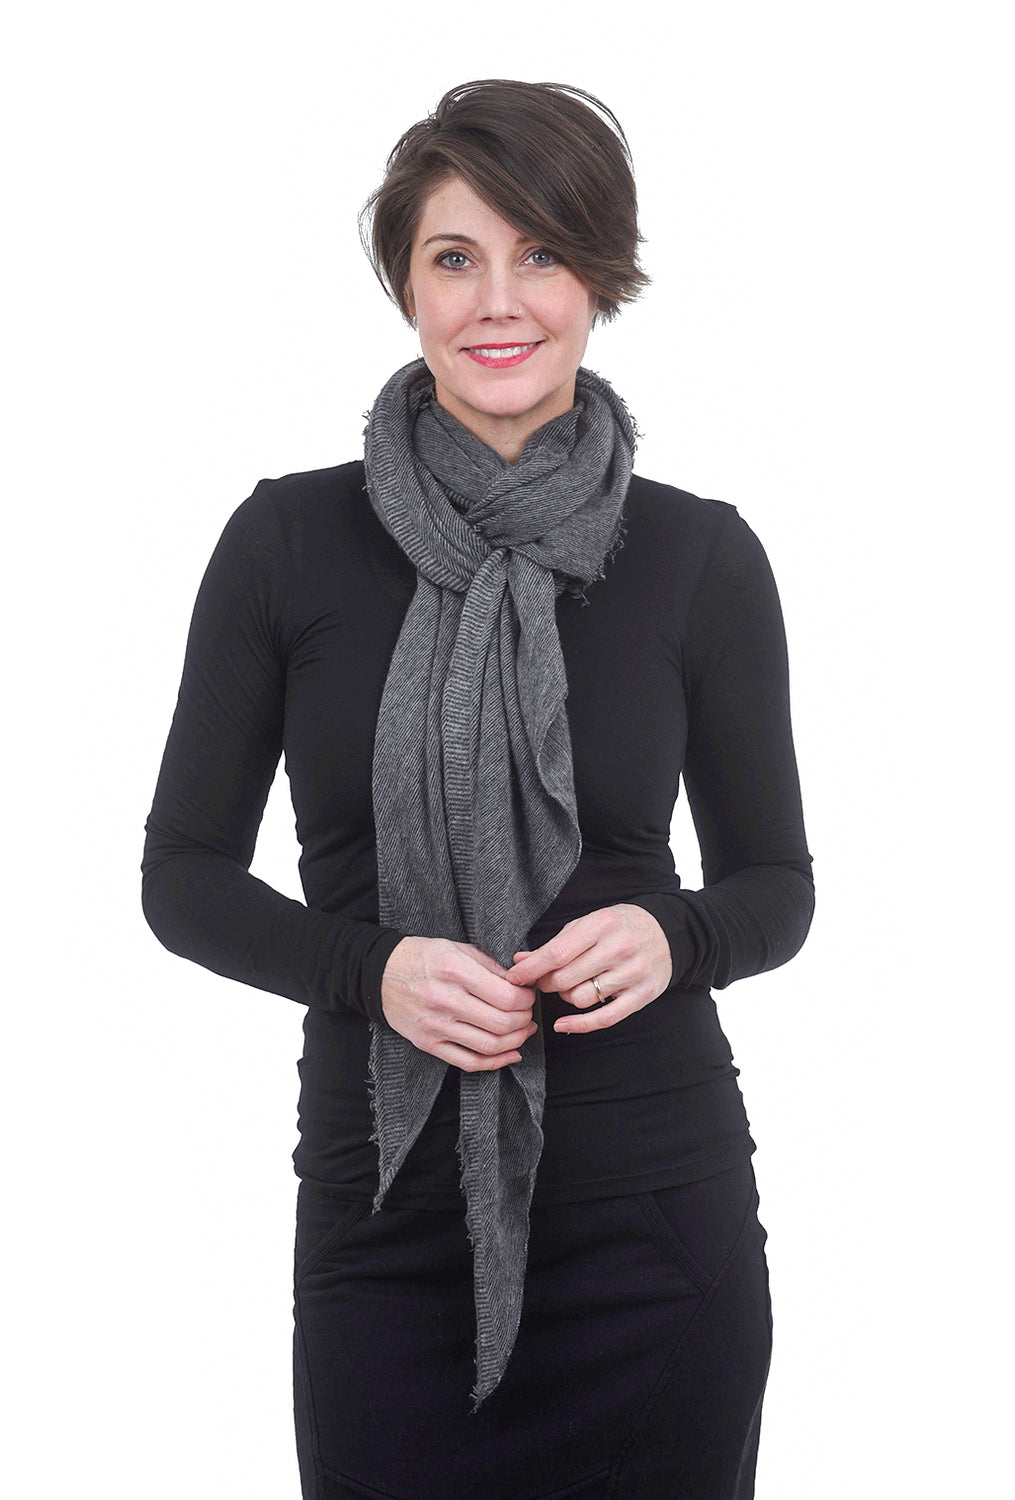 Grisal Cashmere Love Scarf, Heather Gray/Charcoal